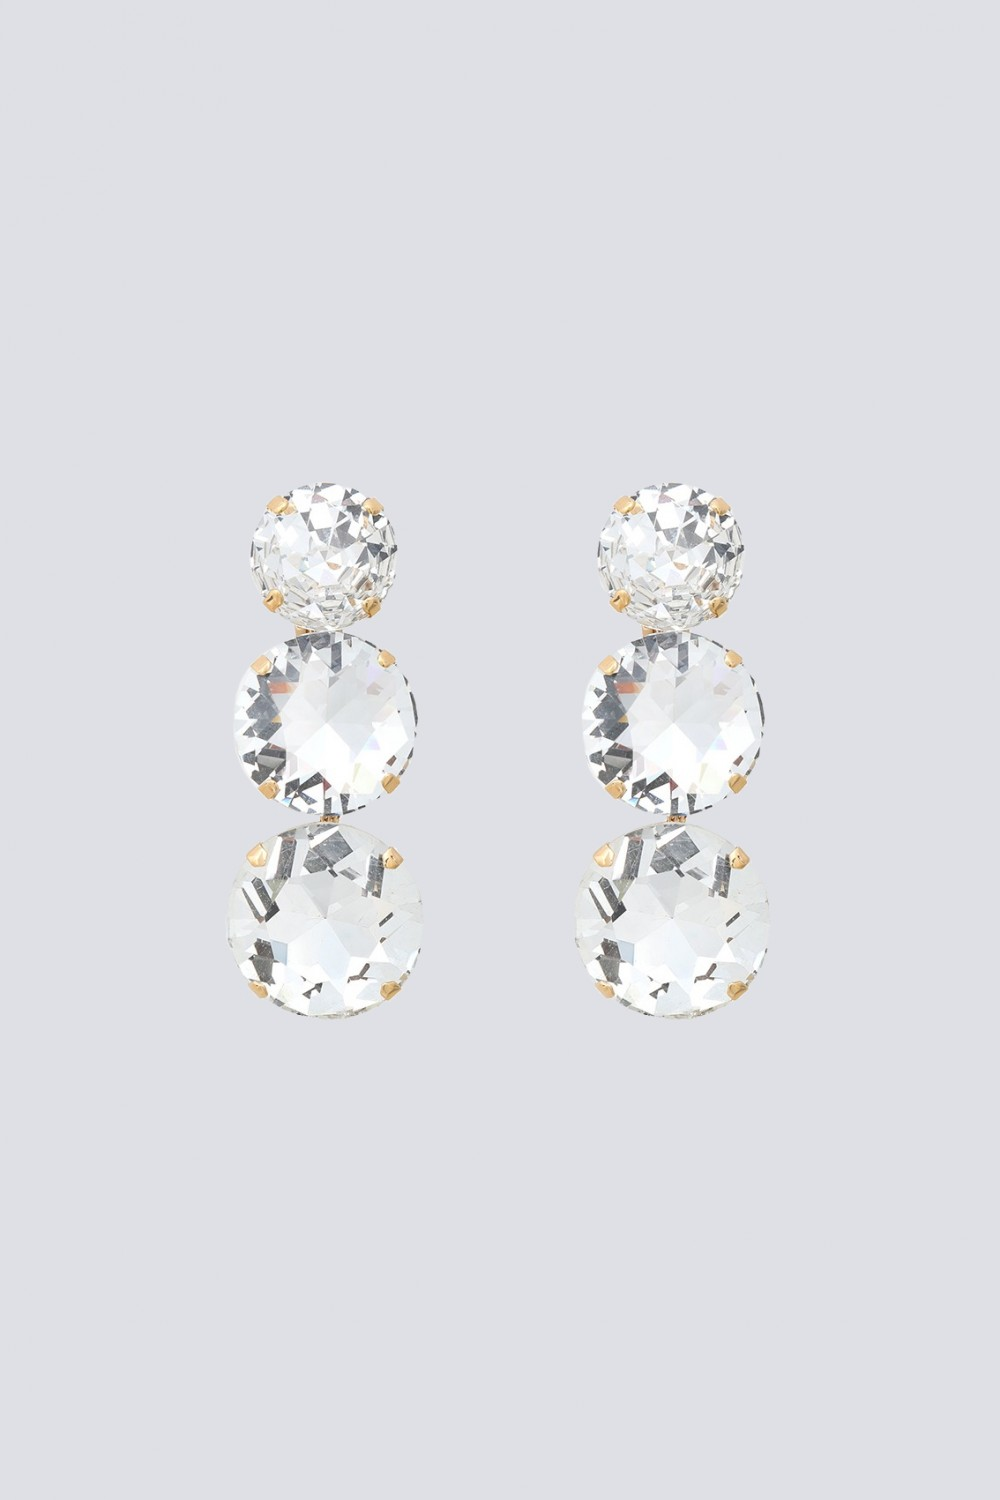 Earrings with maxi crystals